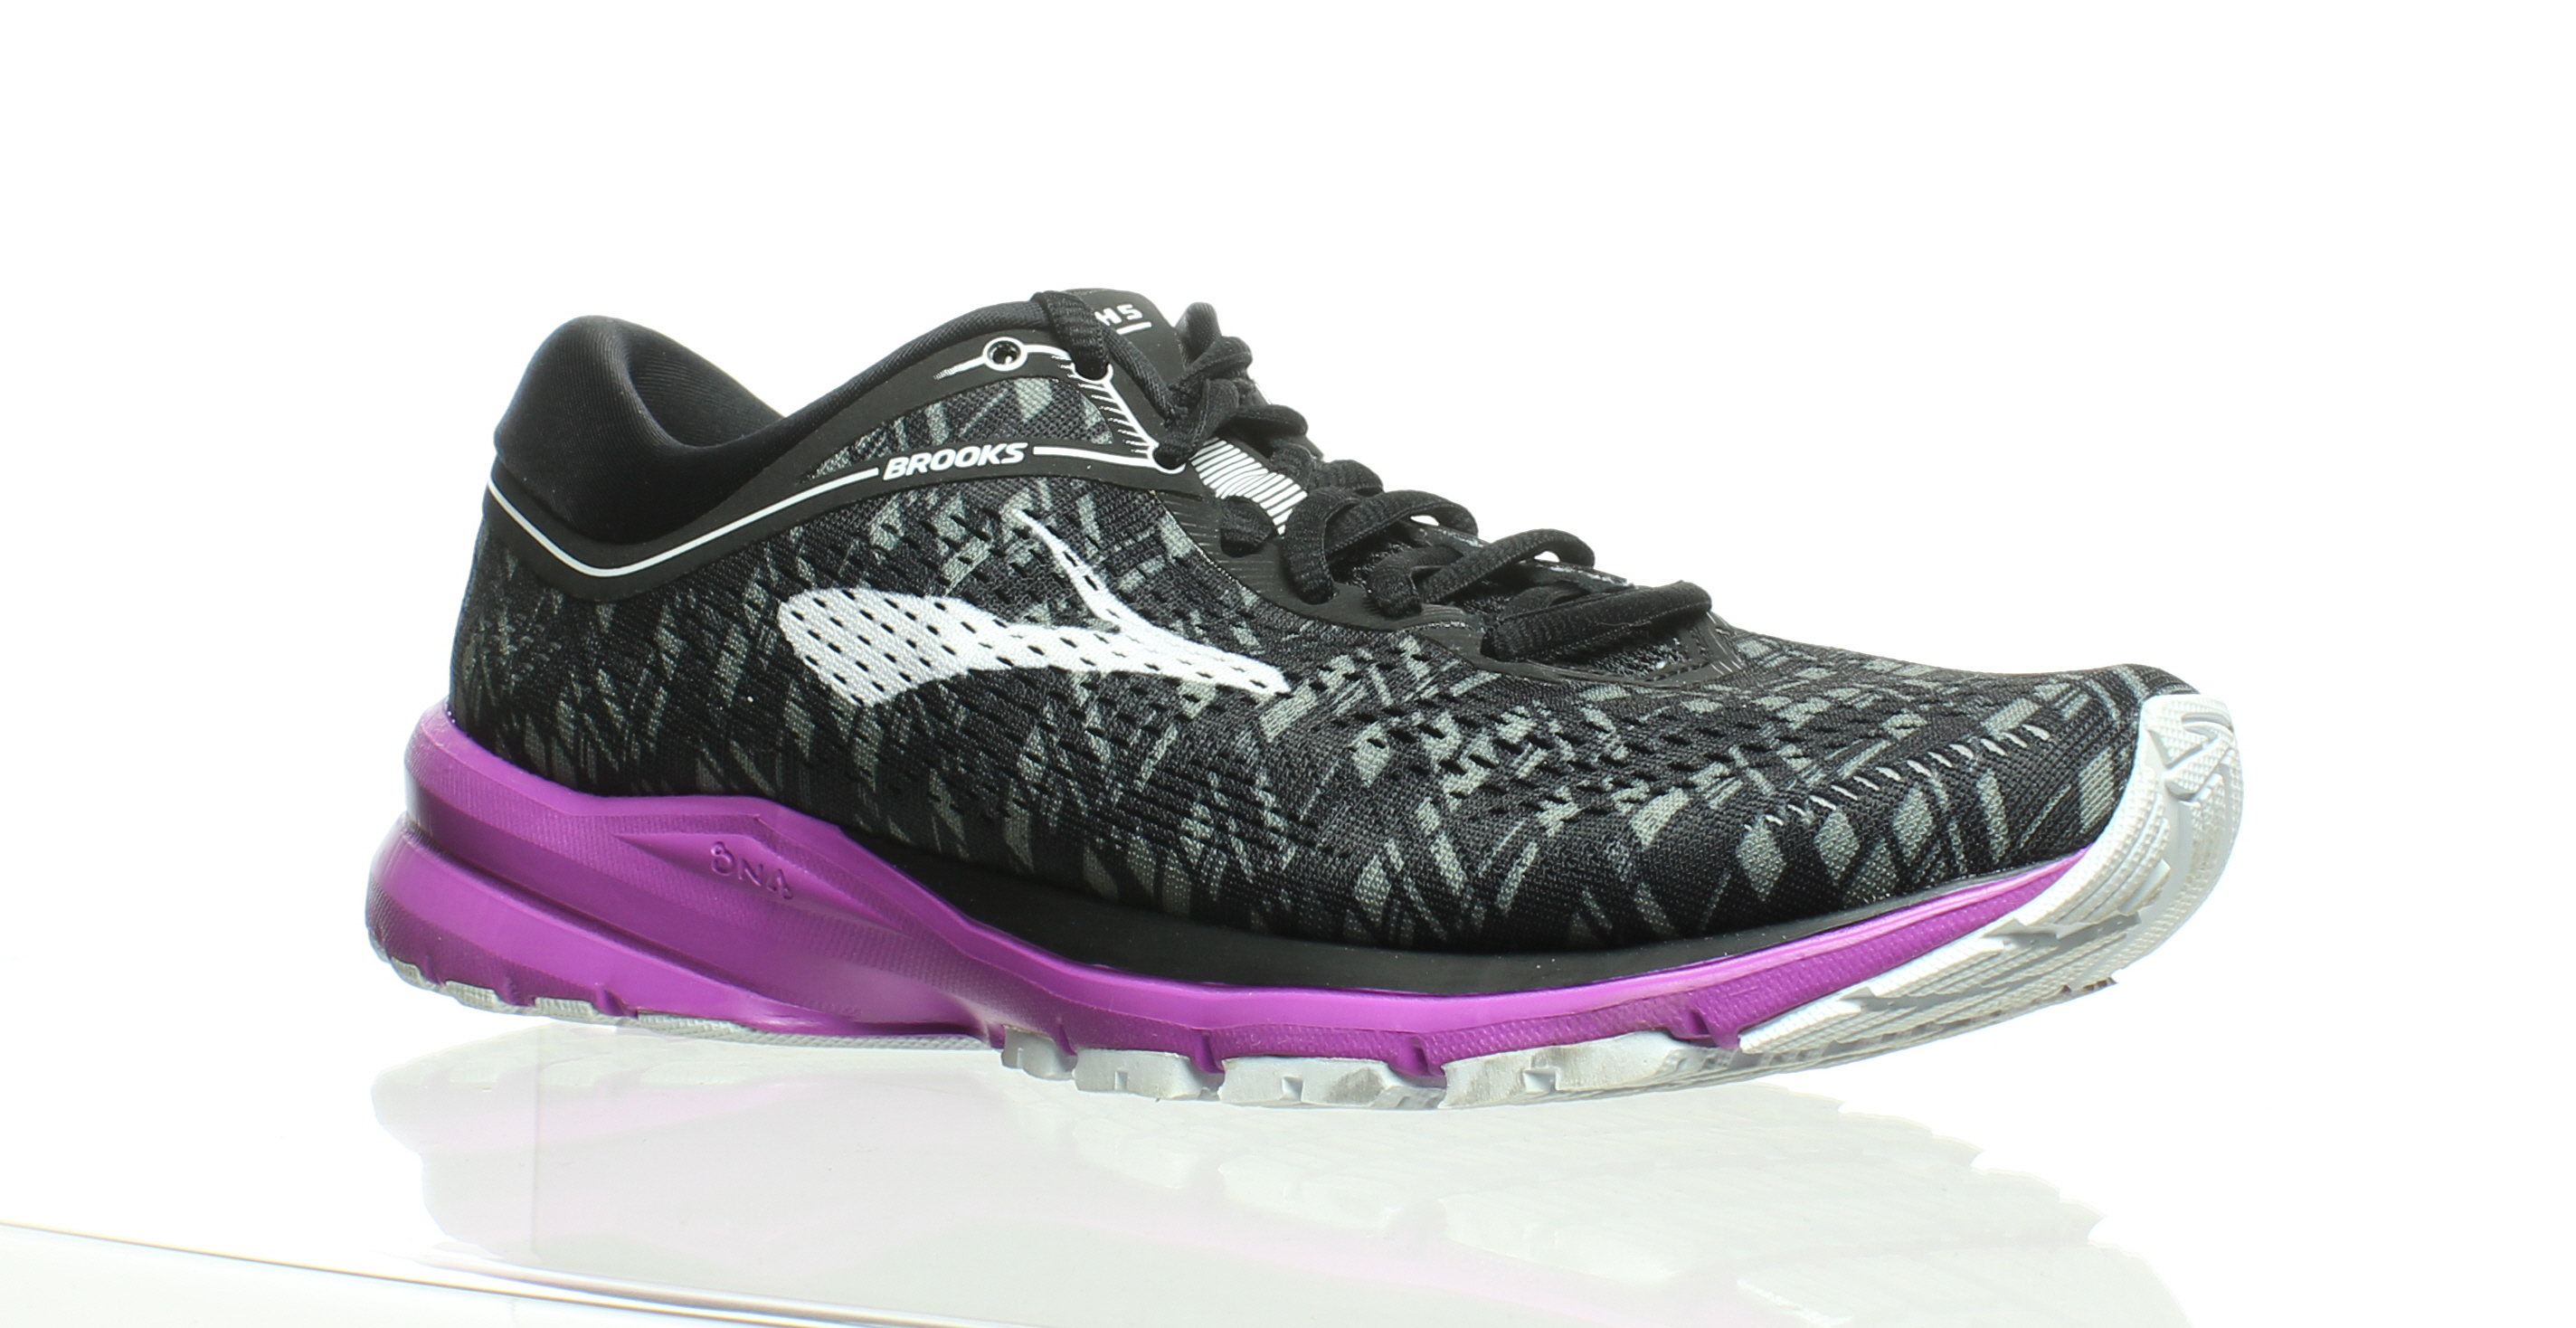 e855b2072dab4 Details about Brooks Womens Launch 5 Black Running Shoes Size 9 (212703)